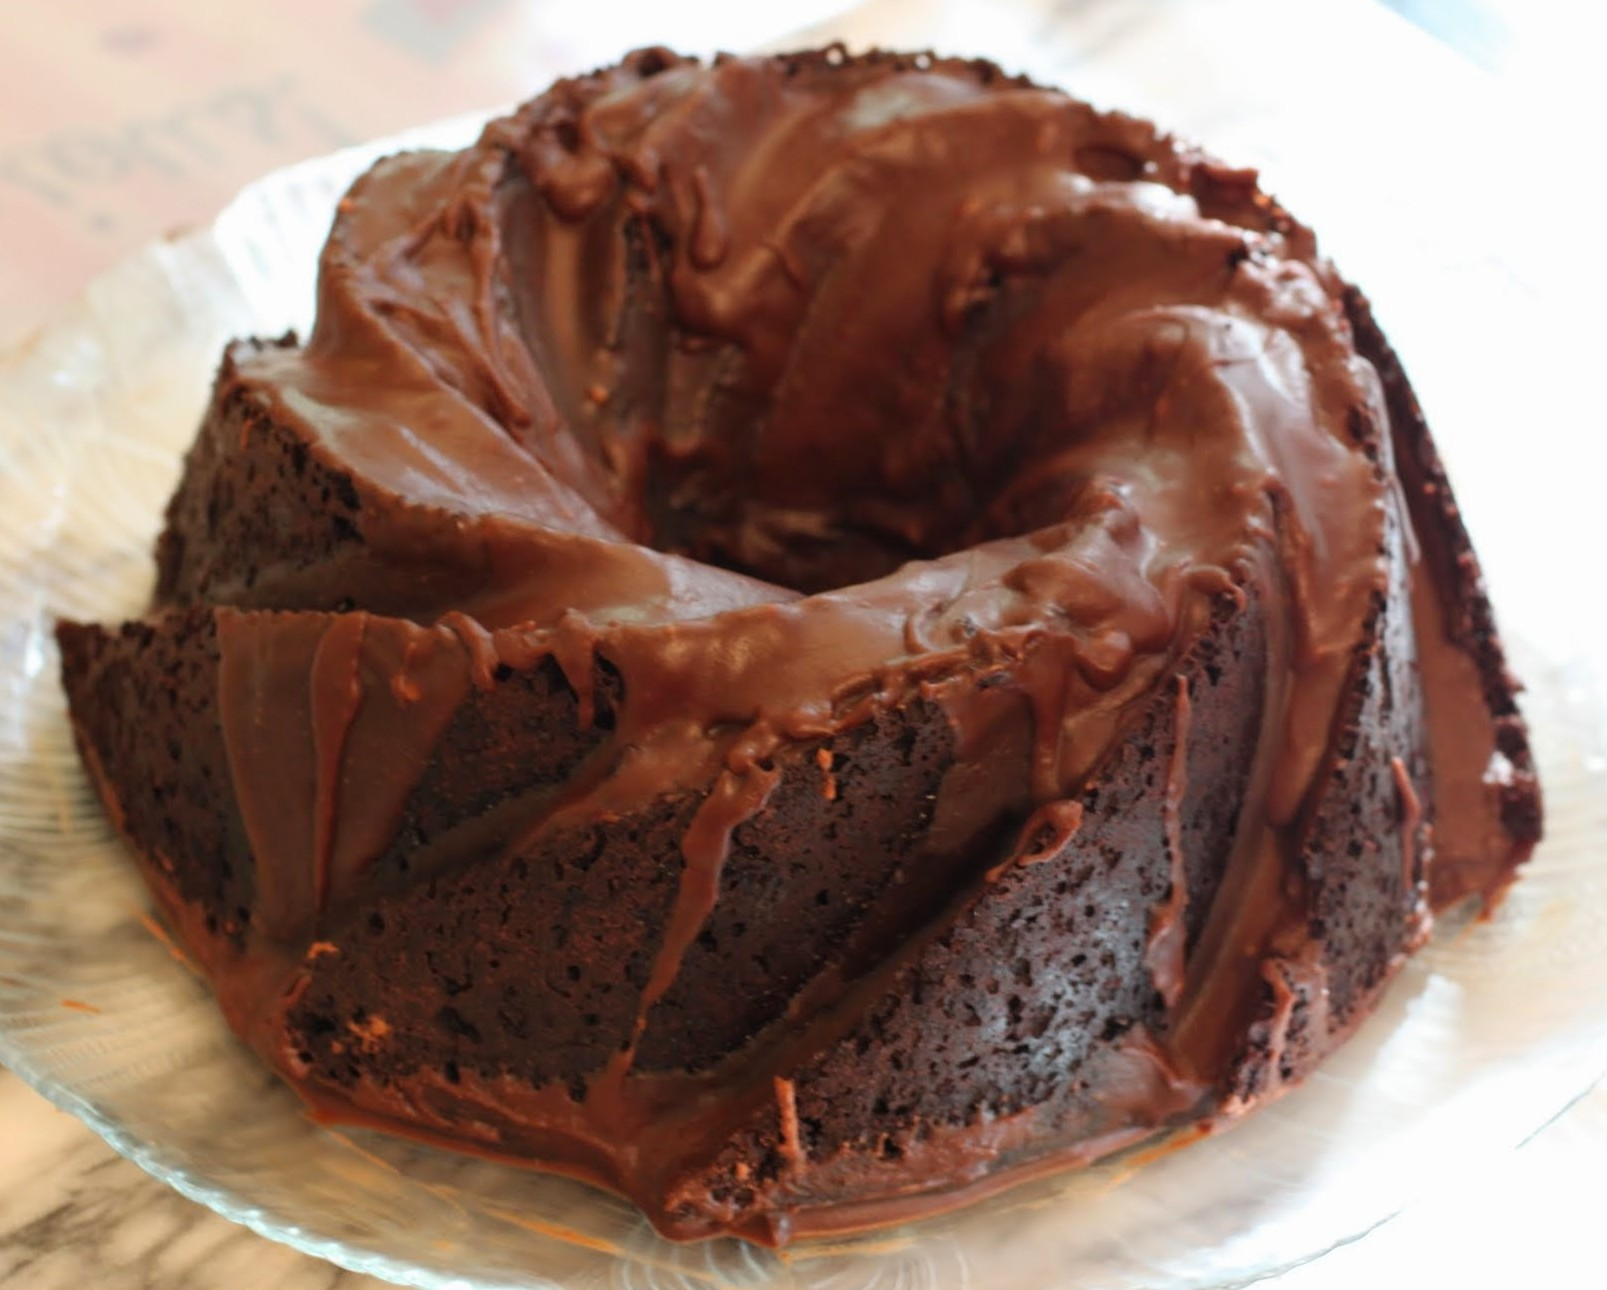 THE Gluten-Free Chocolate Cake!